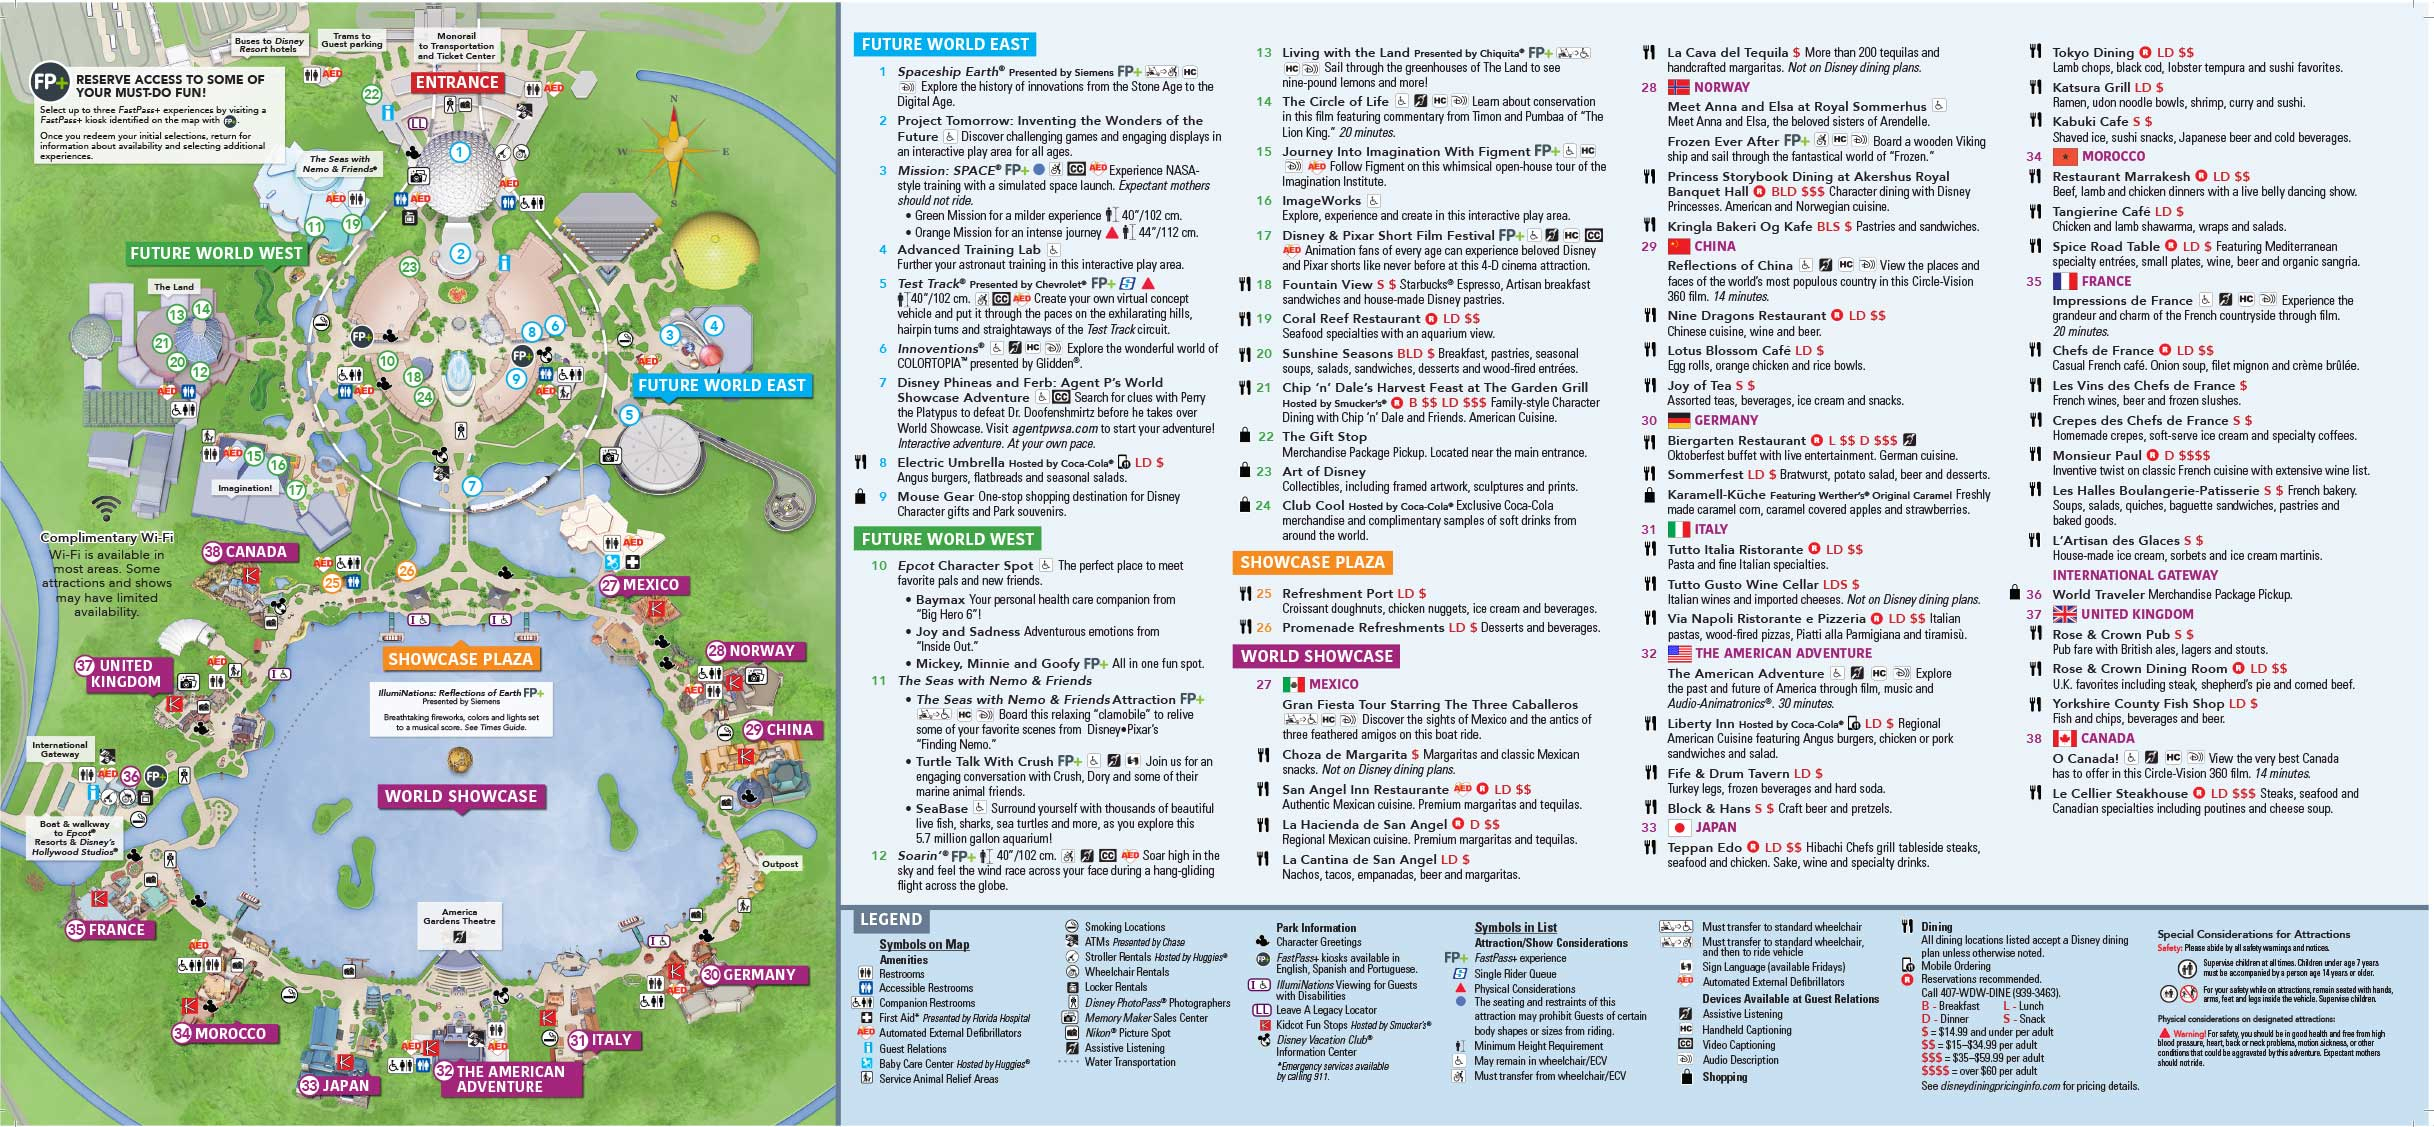 Epcot Map (Walt Disney World) | Wdw Kingdom - Disney Florida Maps 2018